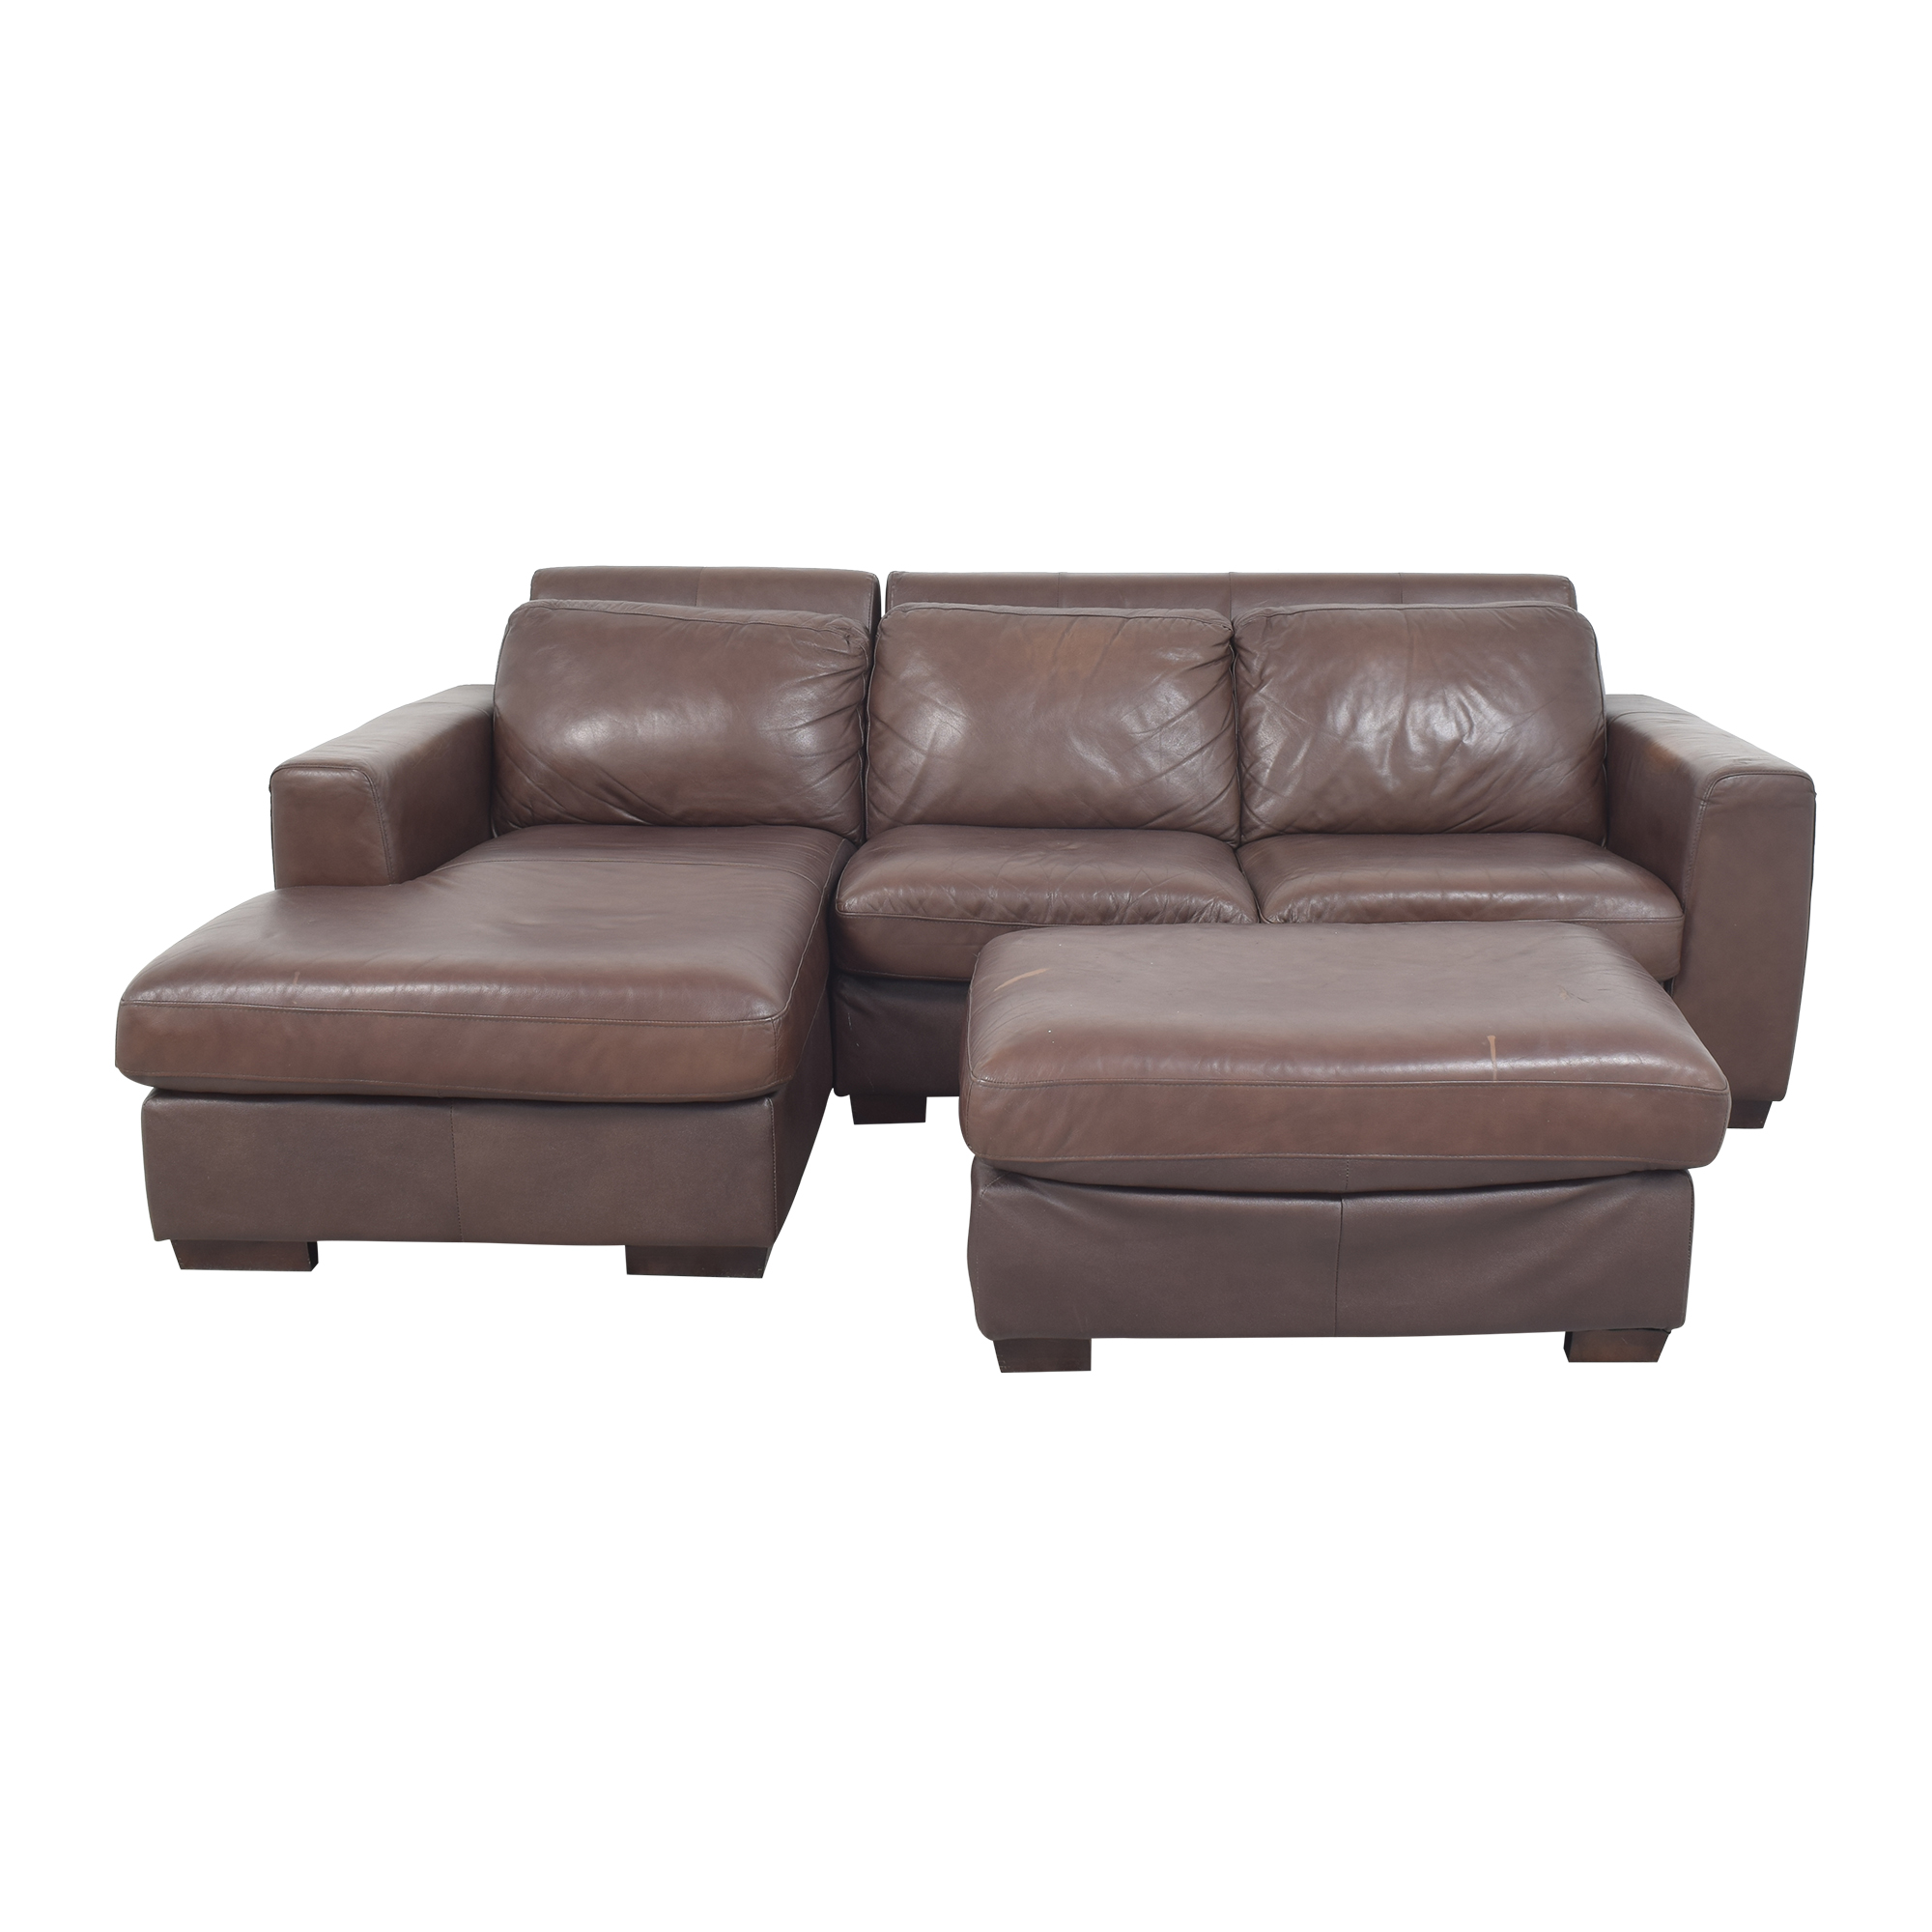 buy Costco Layla Sectional Sofa with Ottoman Costco